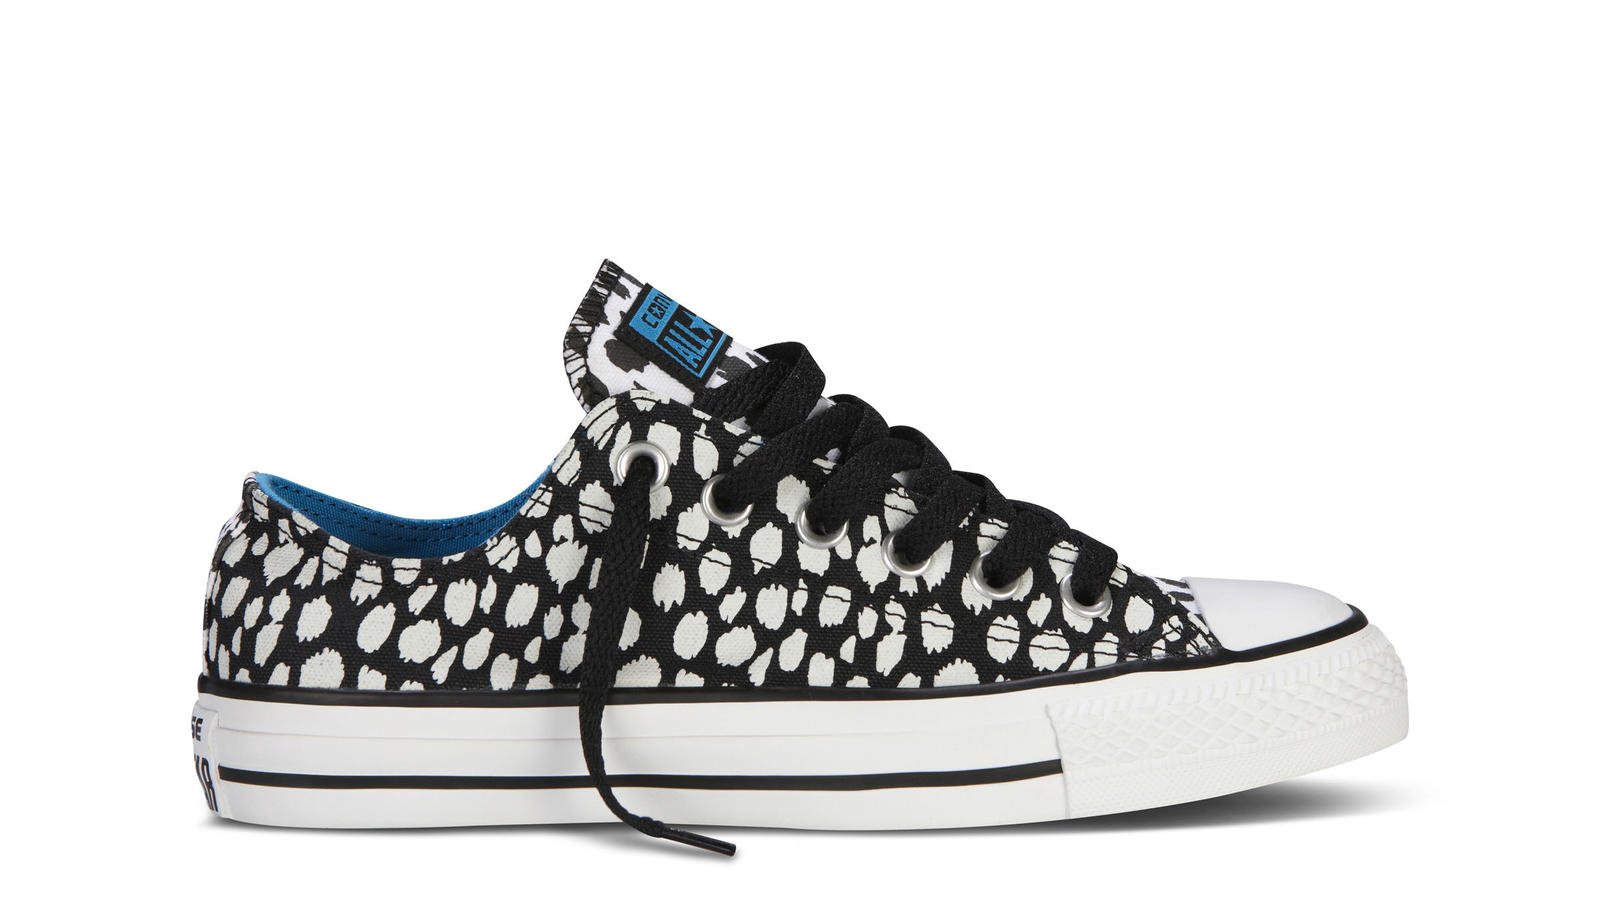 531bb84a46d Converse Fall 2013 All Star Footwear Collections Celebrate ...